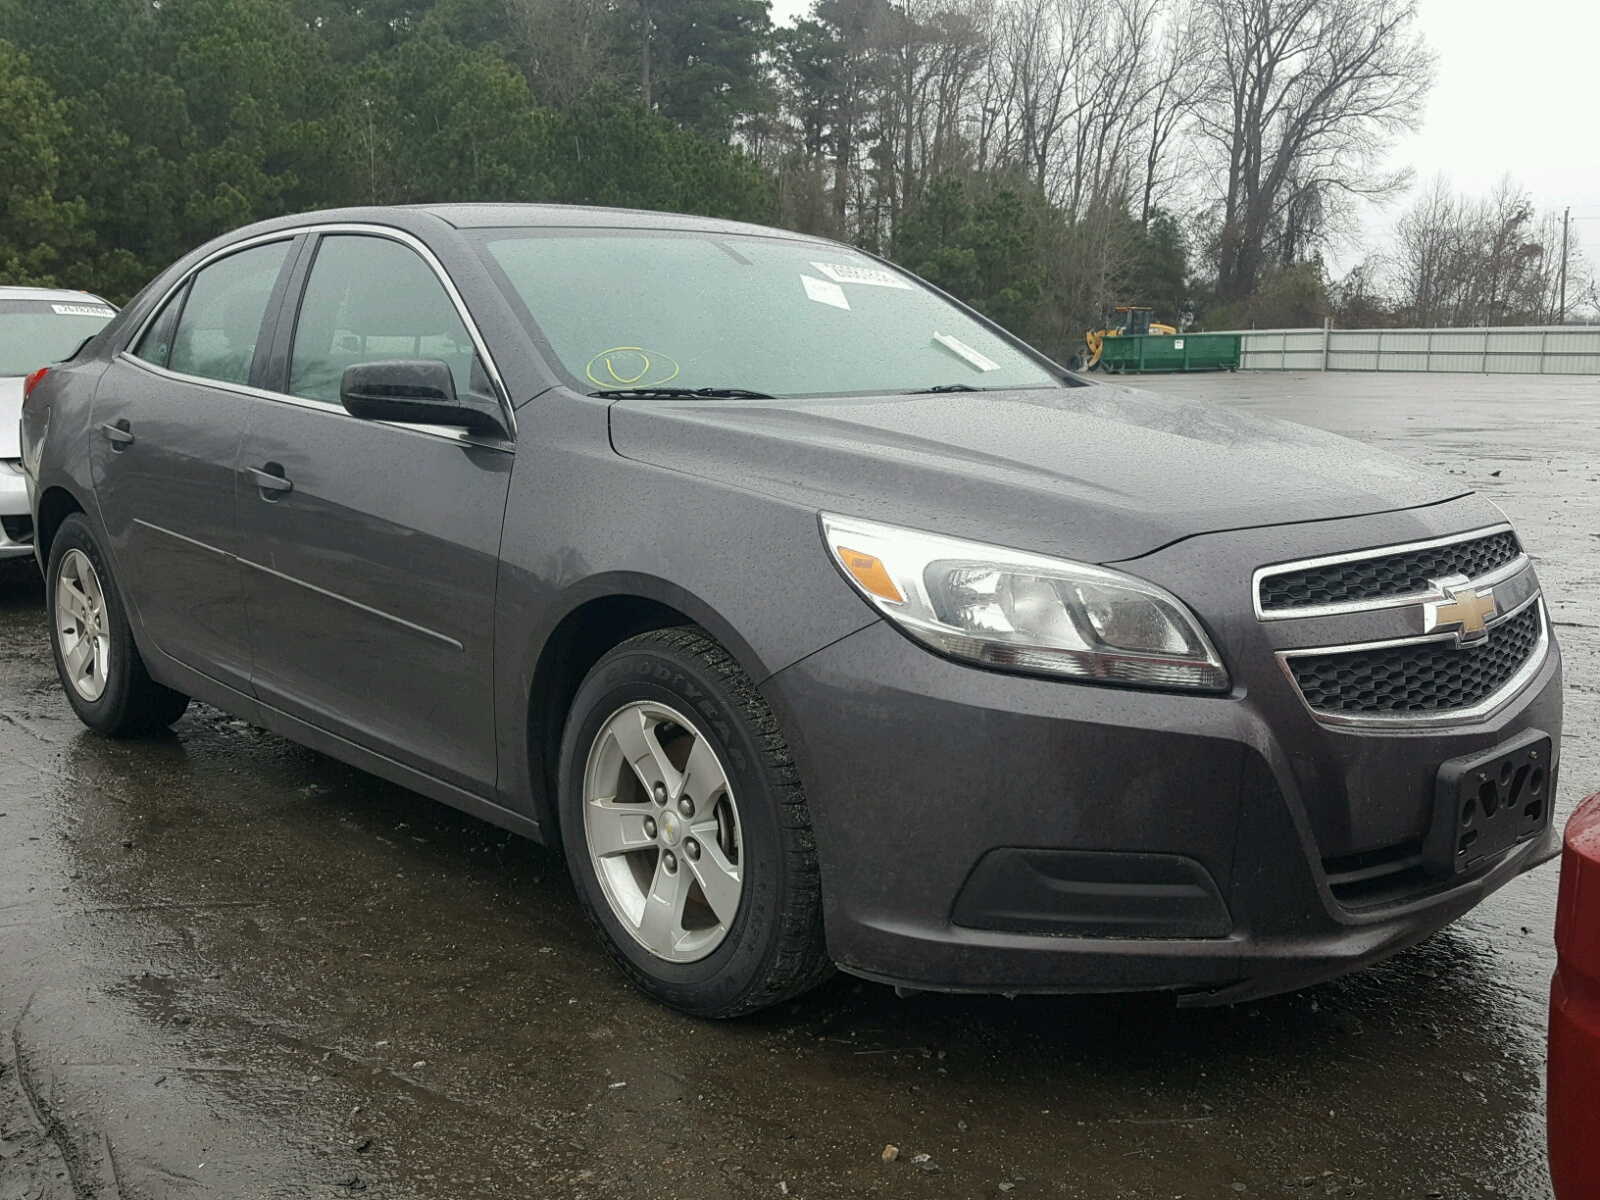 trend chevrolet in news malibu en front view first motion motor look